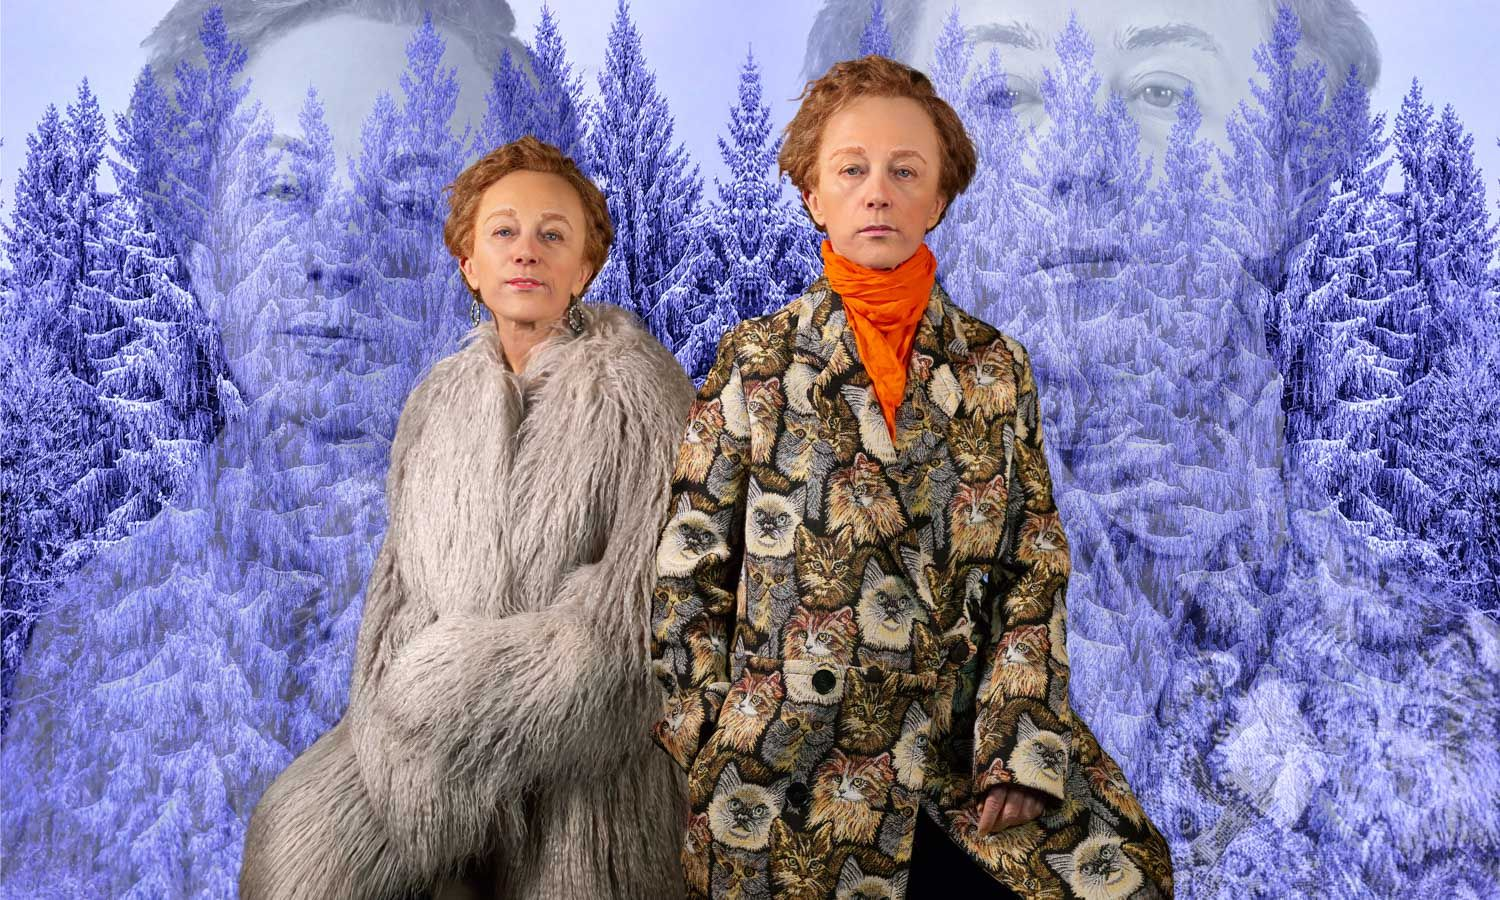 Cindy Sherman dressed as man and woman in fur coats, in front of snow topped trees in a blue hue playing on Identity, Androgyny and masculinity.